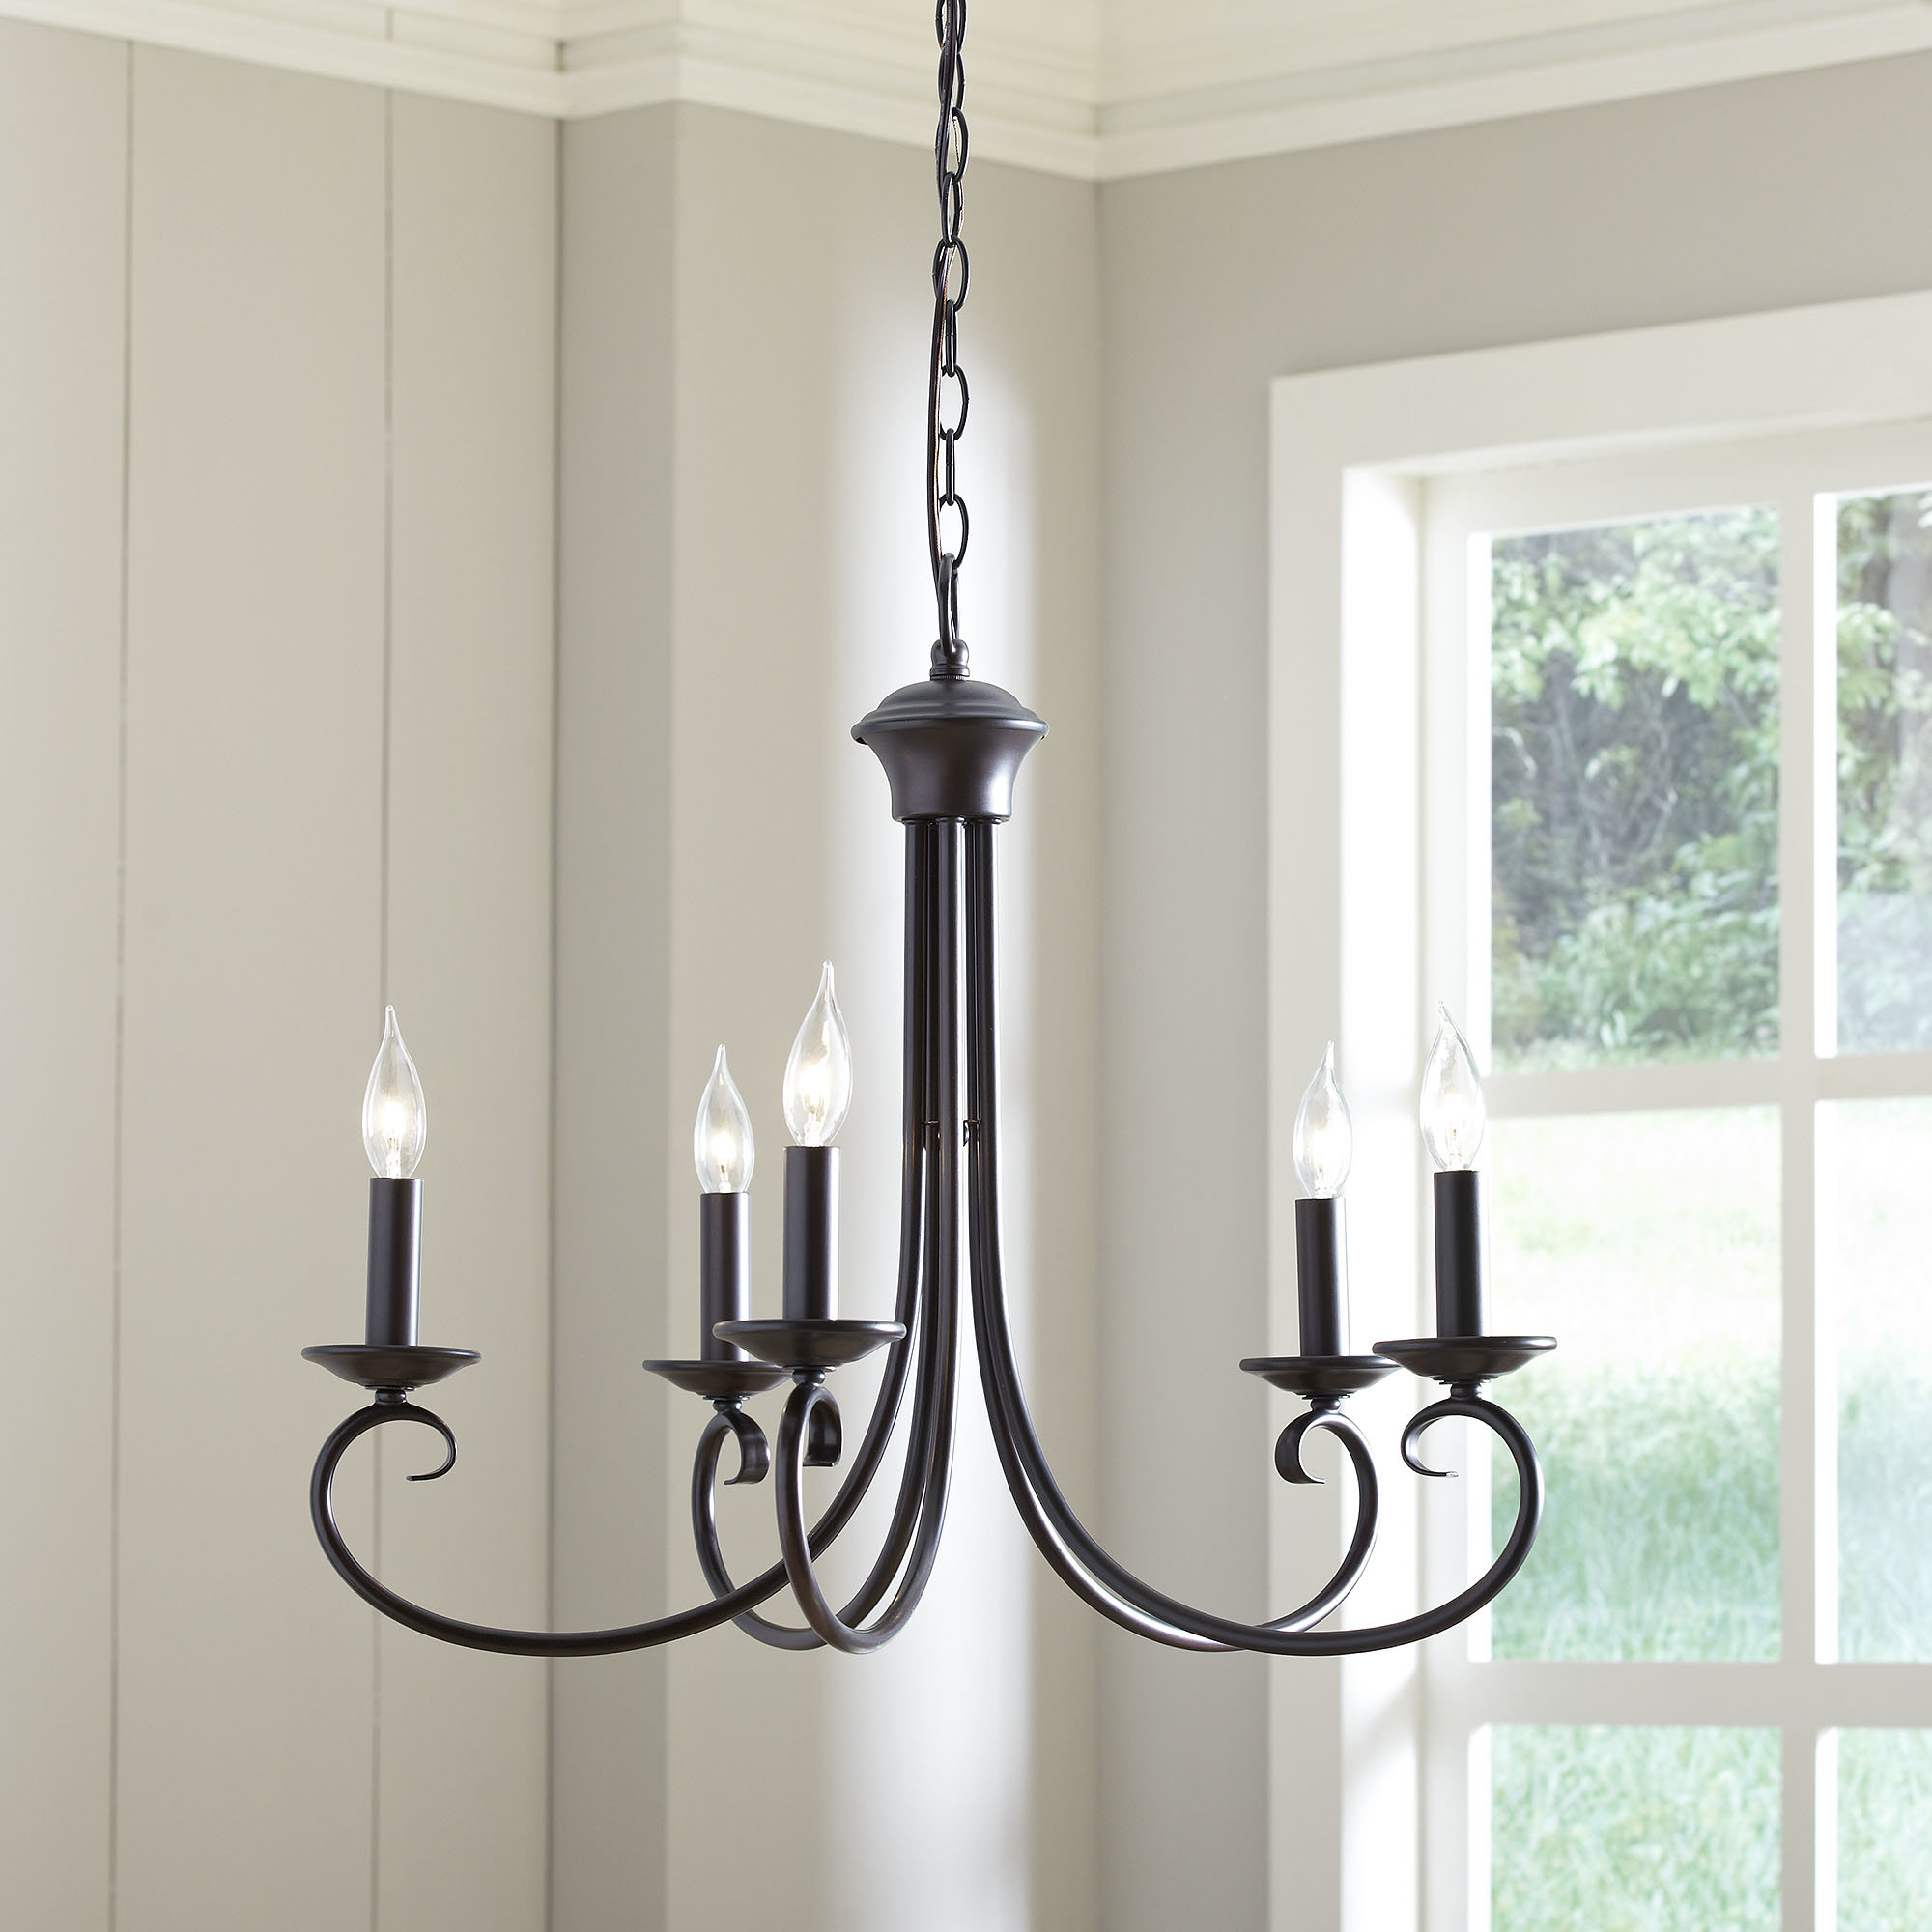 Widely Used Edgell 5 Light Candle Style Chandelier For Shaylee 5 Light Candle Style Chandeliers (View 11 of 25)